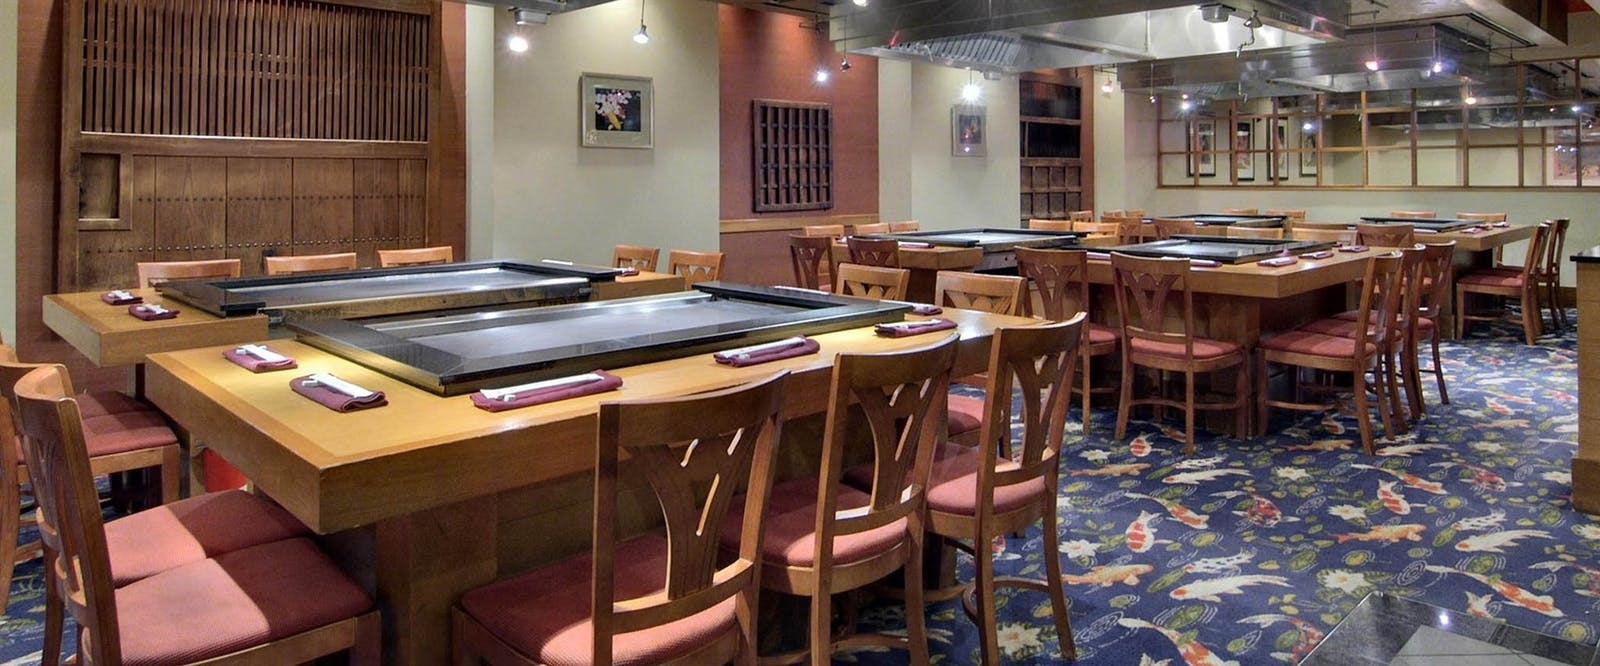 Benihana Japanese Steakhouse at Fairmont Royal York, Toronto